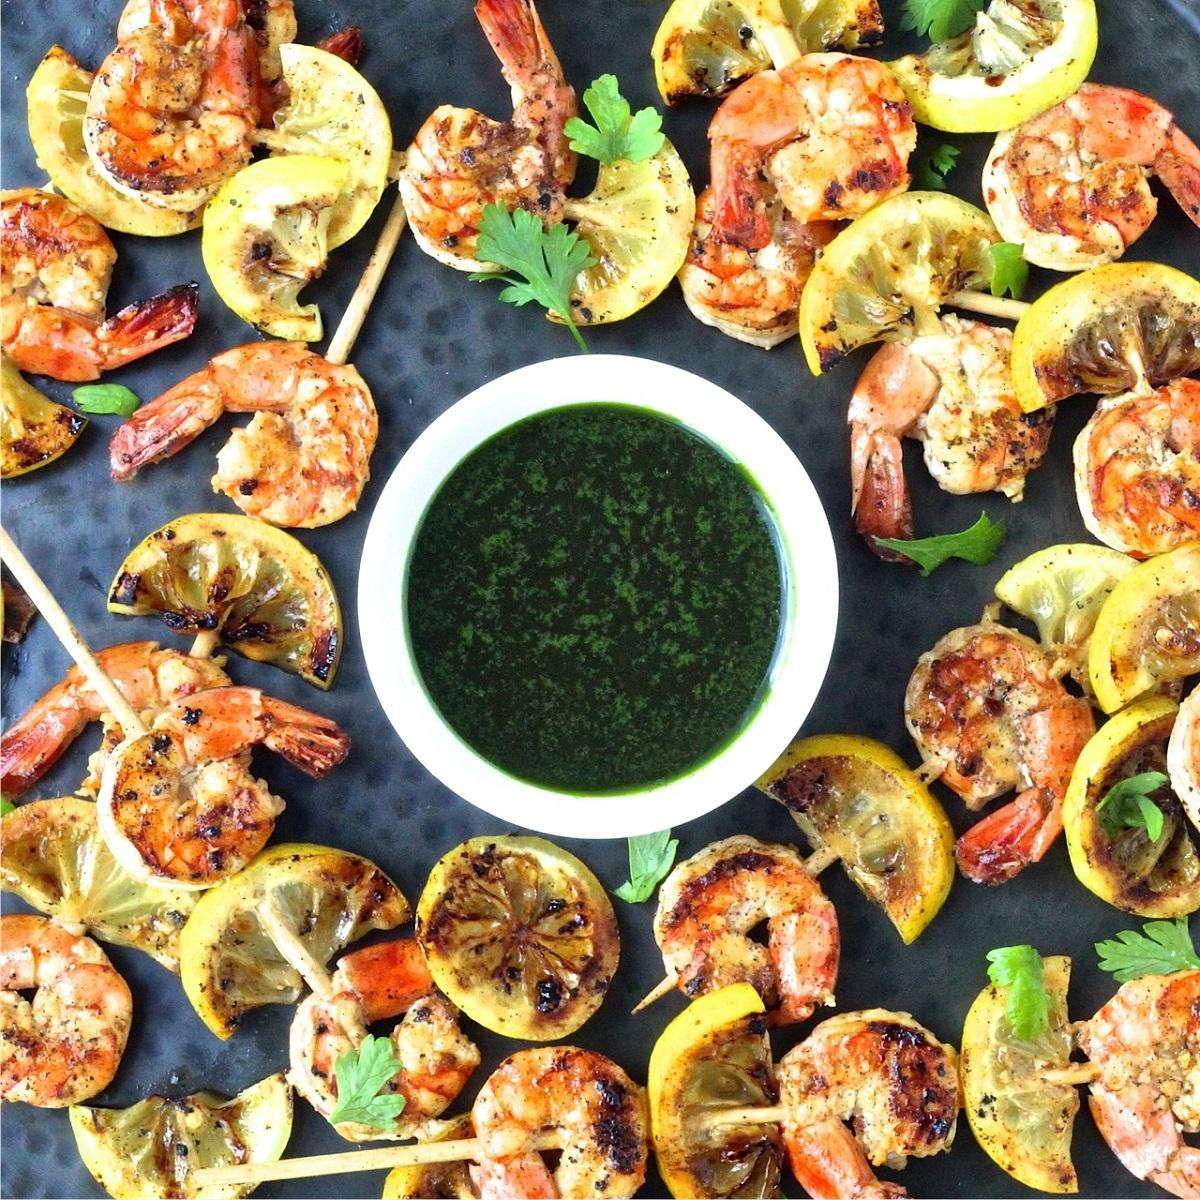 Shrimp with olive oil